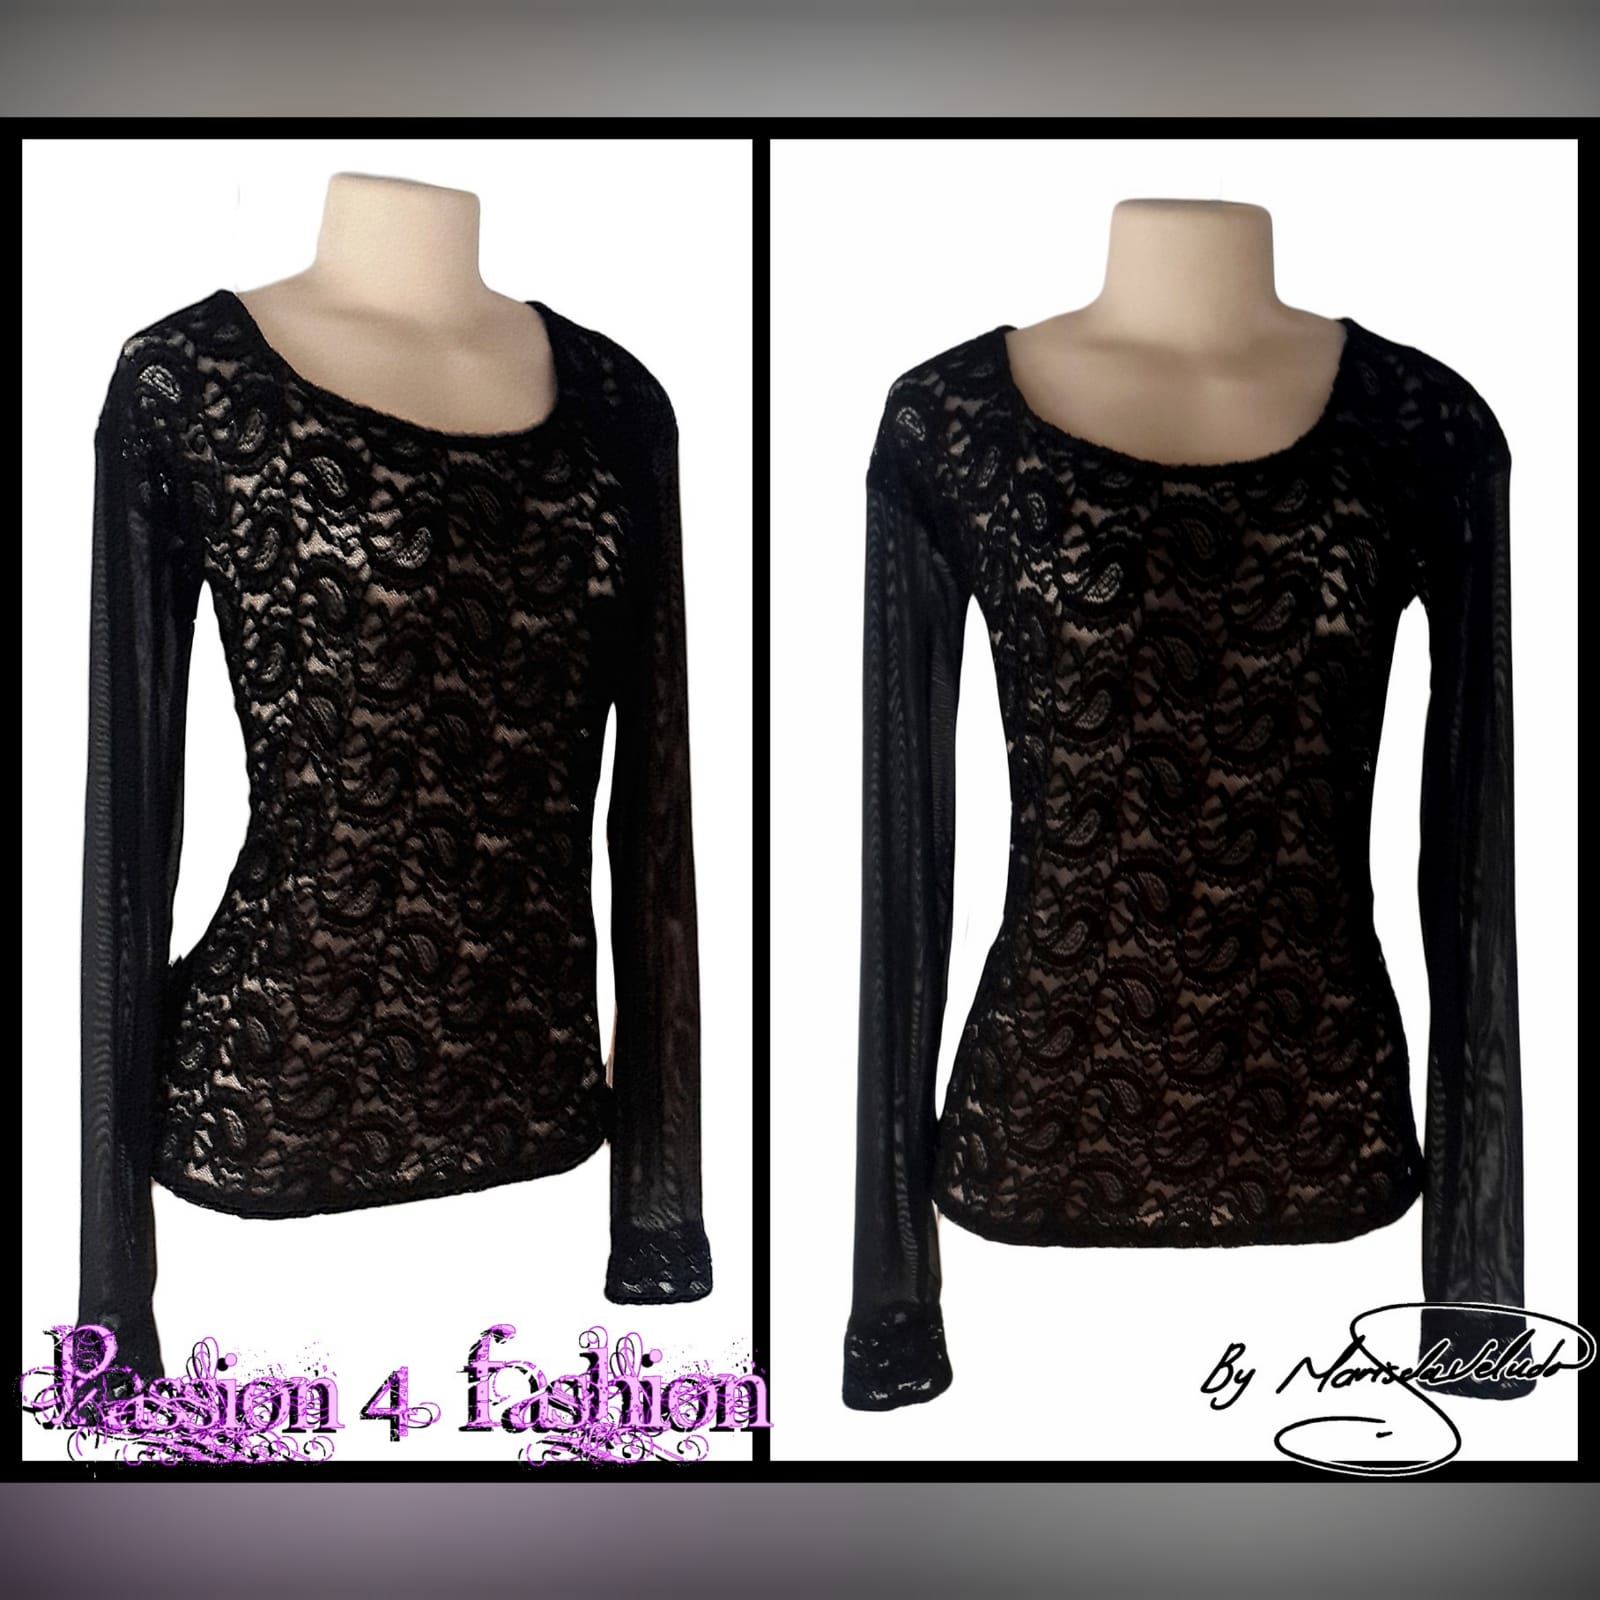 Black sheer lace long sleeve top 2 black sheer lace, long sleeve matric after party, smart casual top